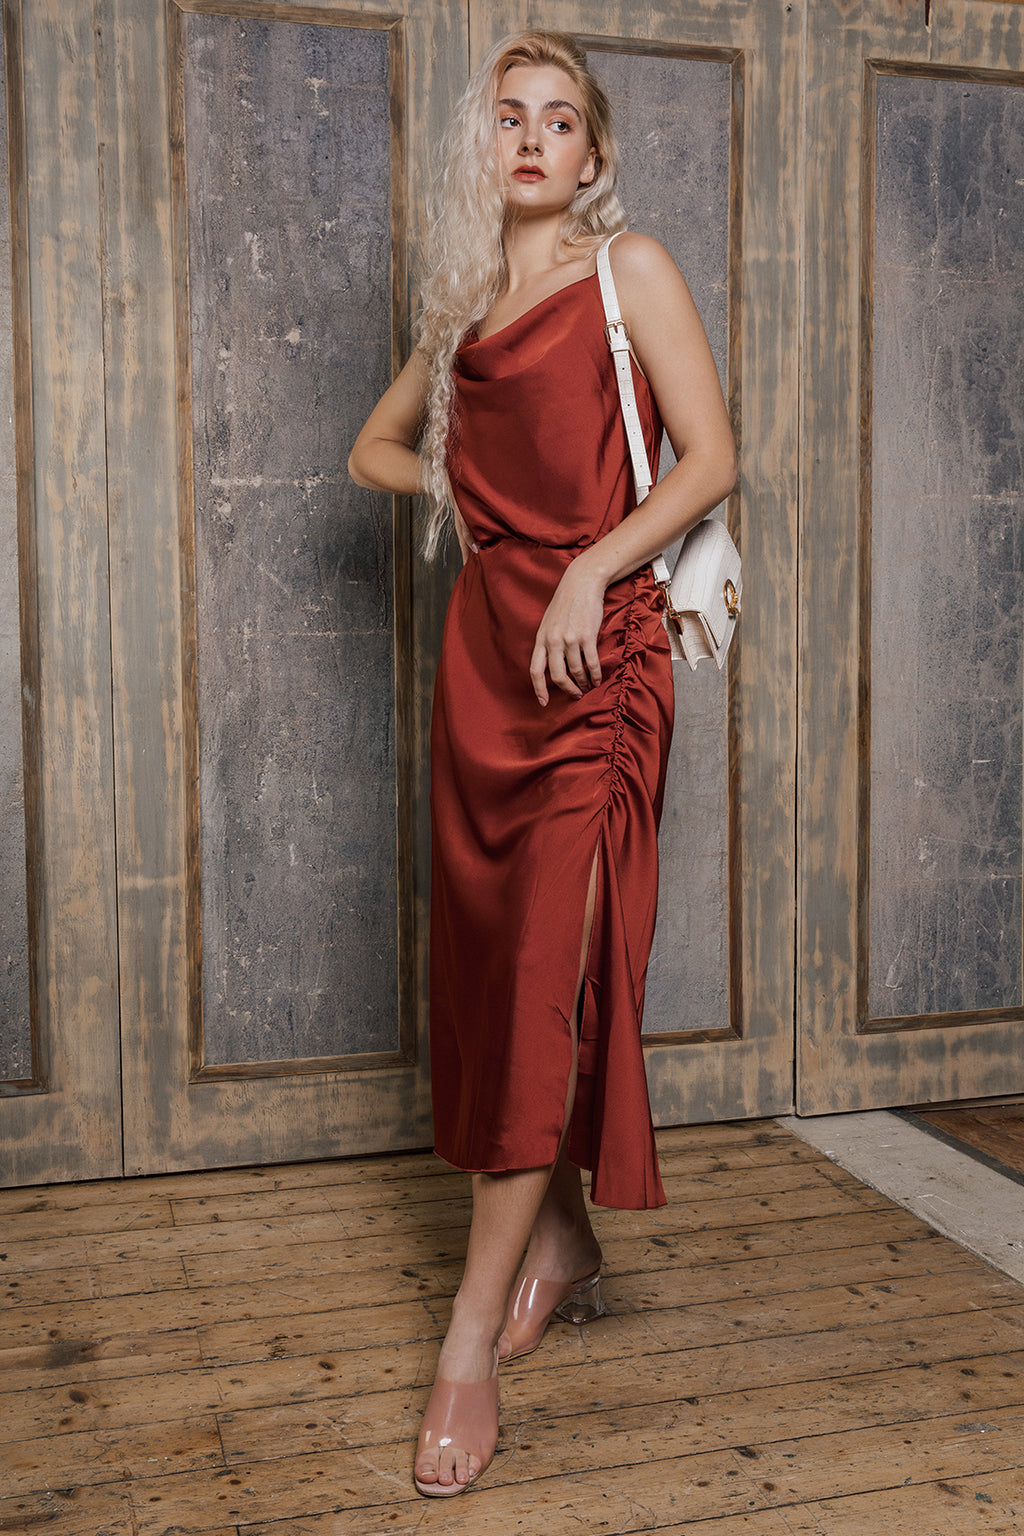 Red Satin Slip Dress - Sugar + Style